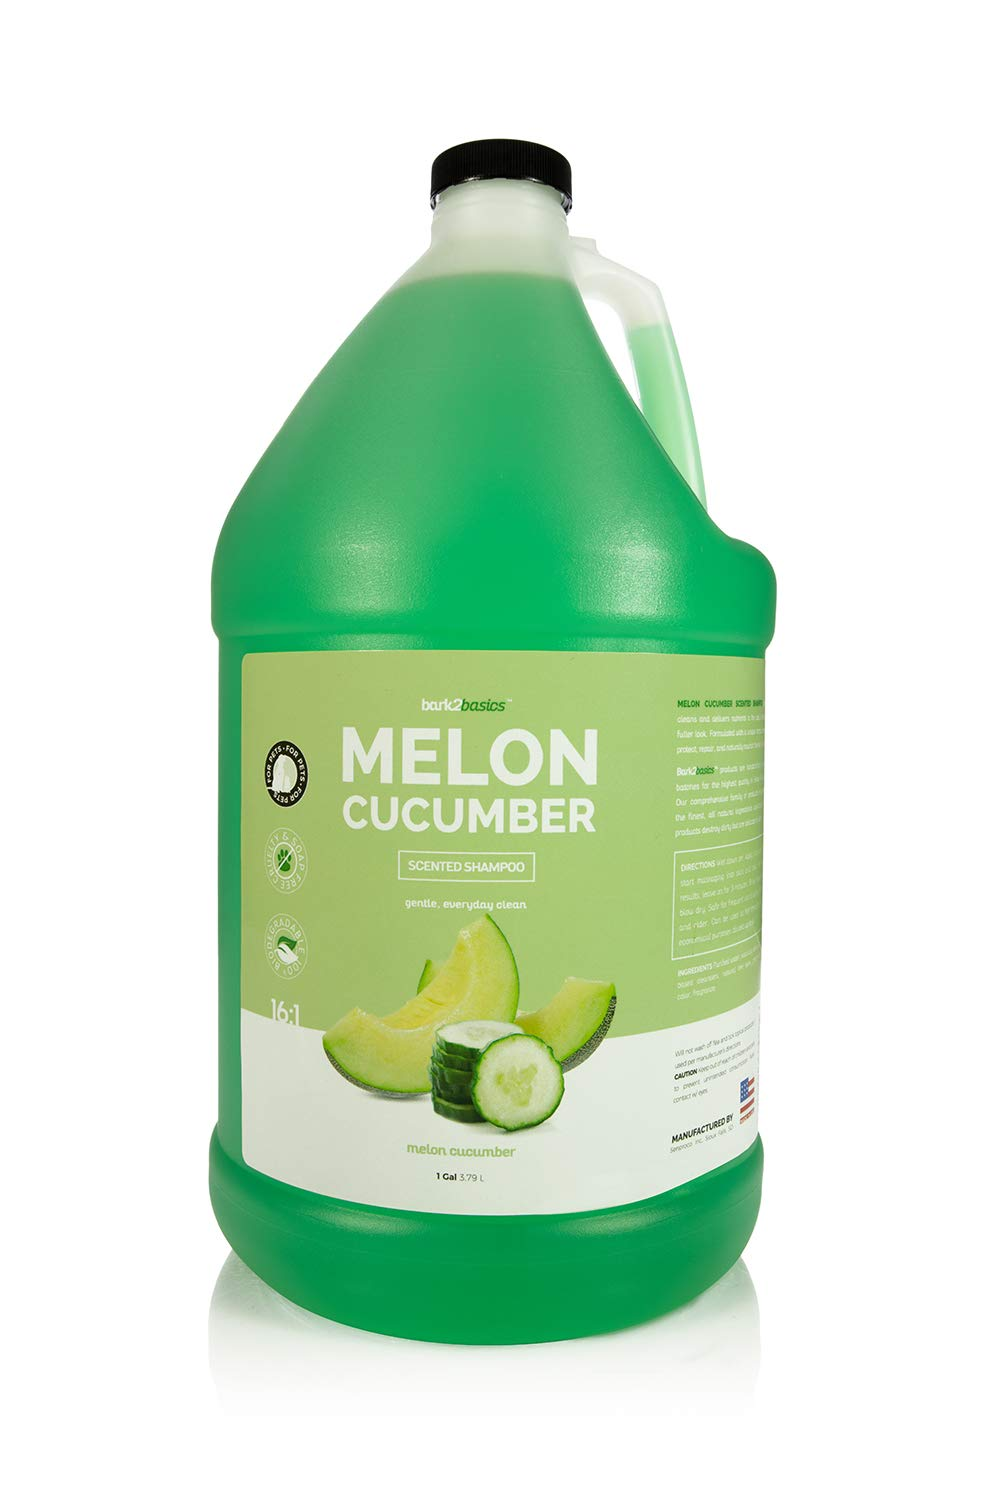 Bark 2 Basics Melon Cucumber Shampoo, 1 Gallon